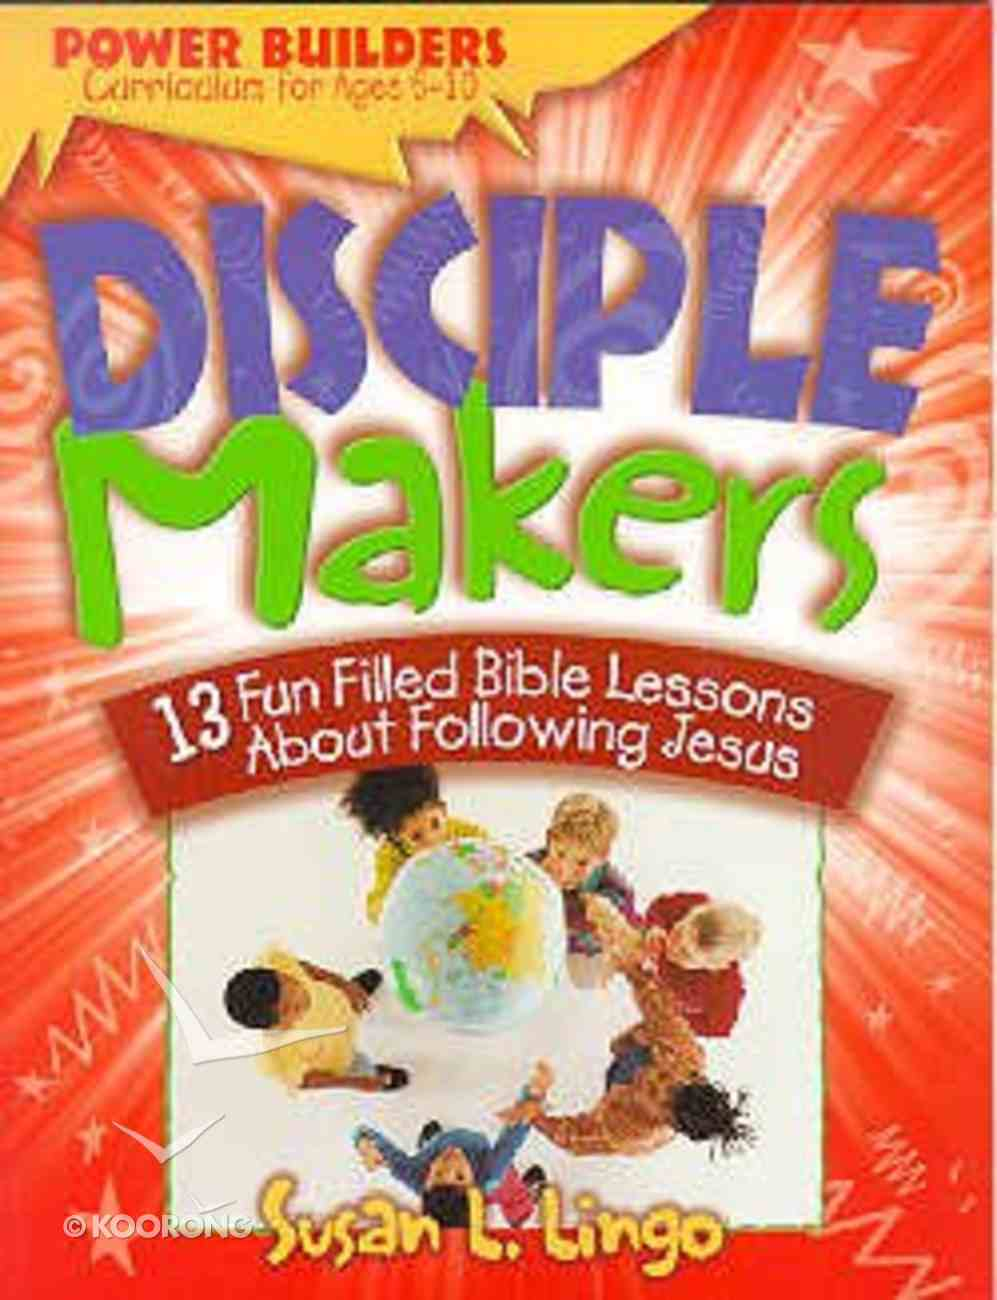 Power Builders: Disciple Makers Paperback